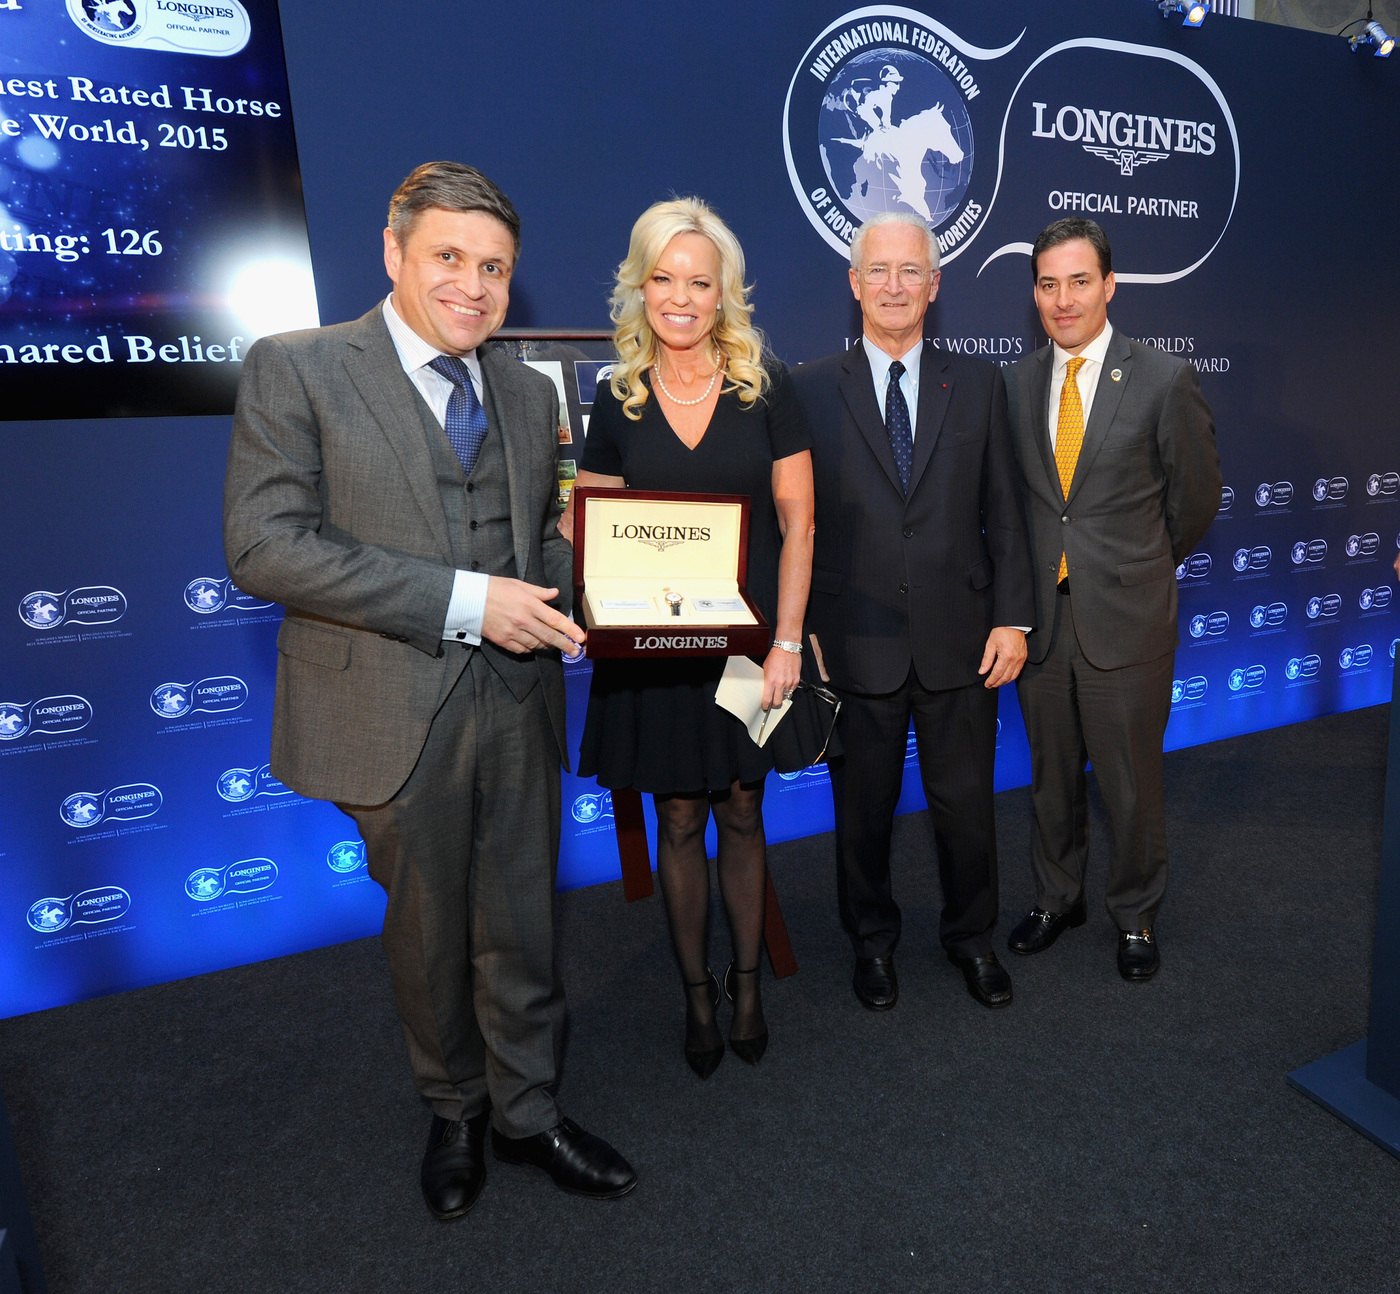 Longines Flat Racing Event: American Pharoah named 2015 Longines World's Best Racehorse, Qatar Prix de l'Arc de Triomphe wins 2015 Longines World's Best Horse Race 3